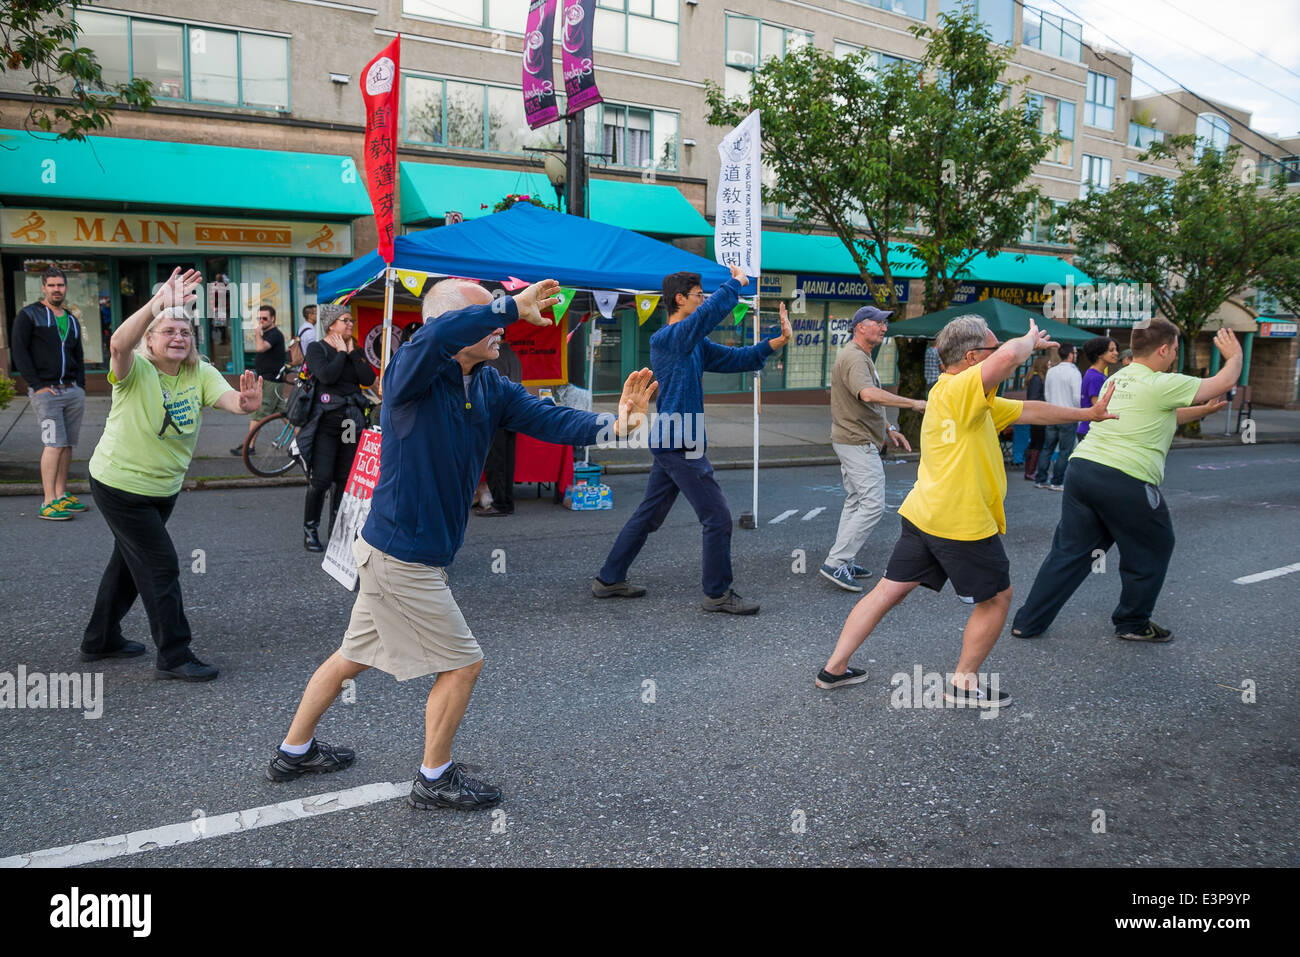 Adults demonstrating Tai Chi, Car Free Day, Main Street, Vancouver, British Columbia, Canada - Stock Image